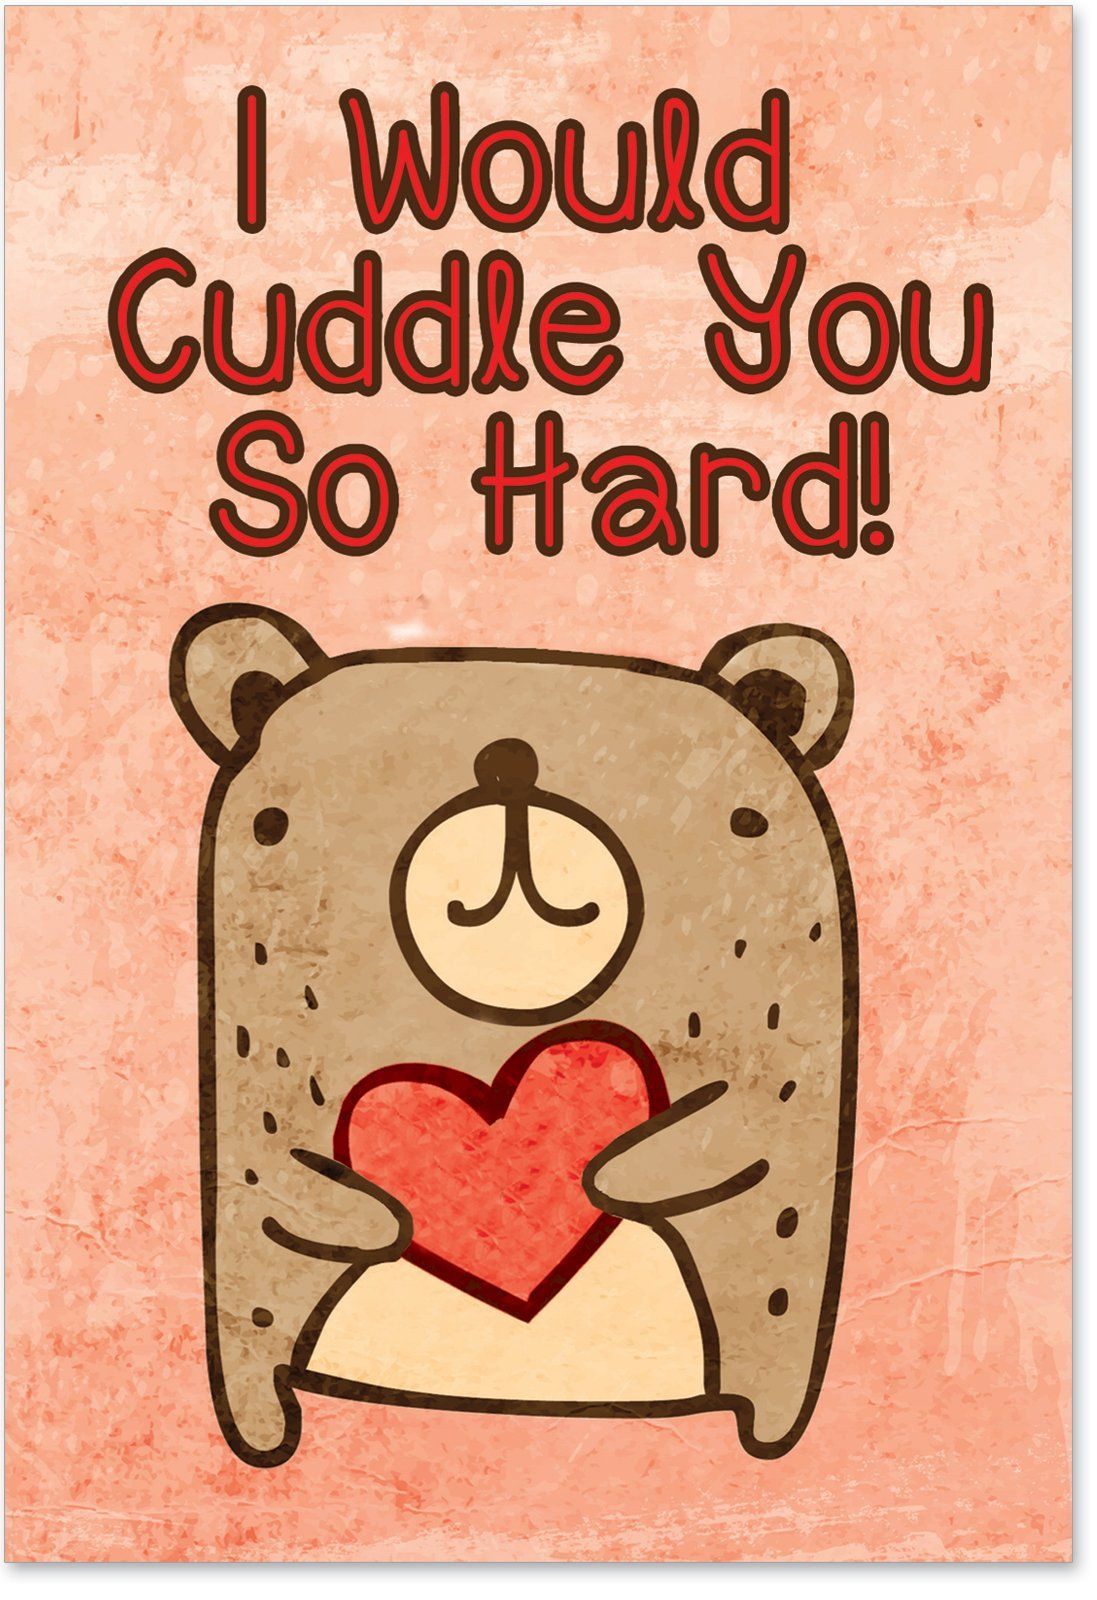 2197 Cuddle You So Hard Funny Valentines Day Greeting Card With